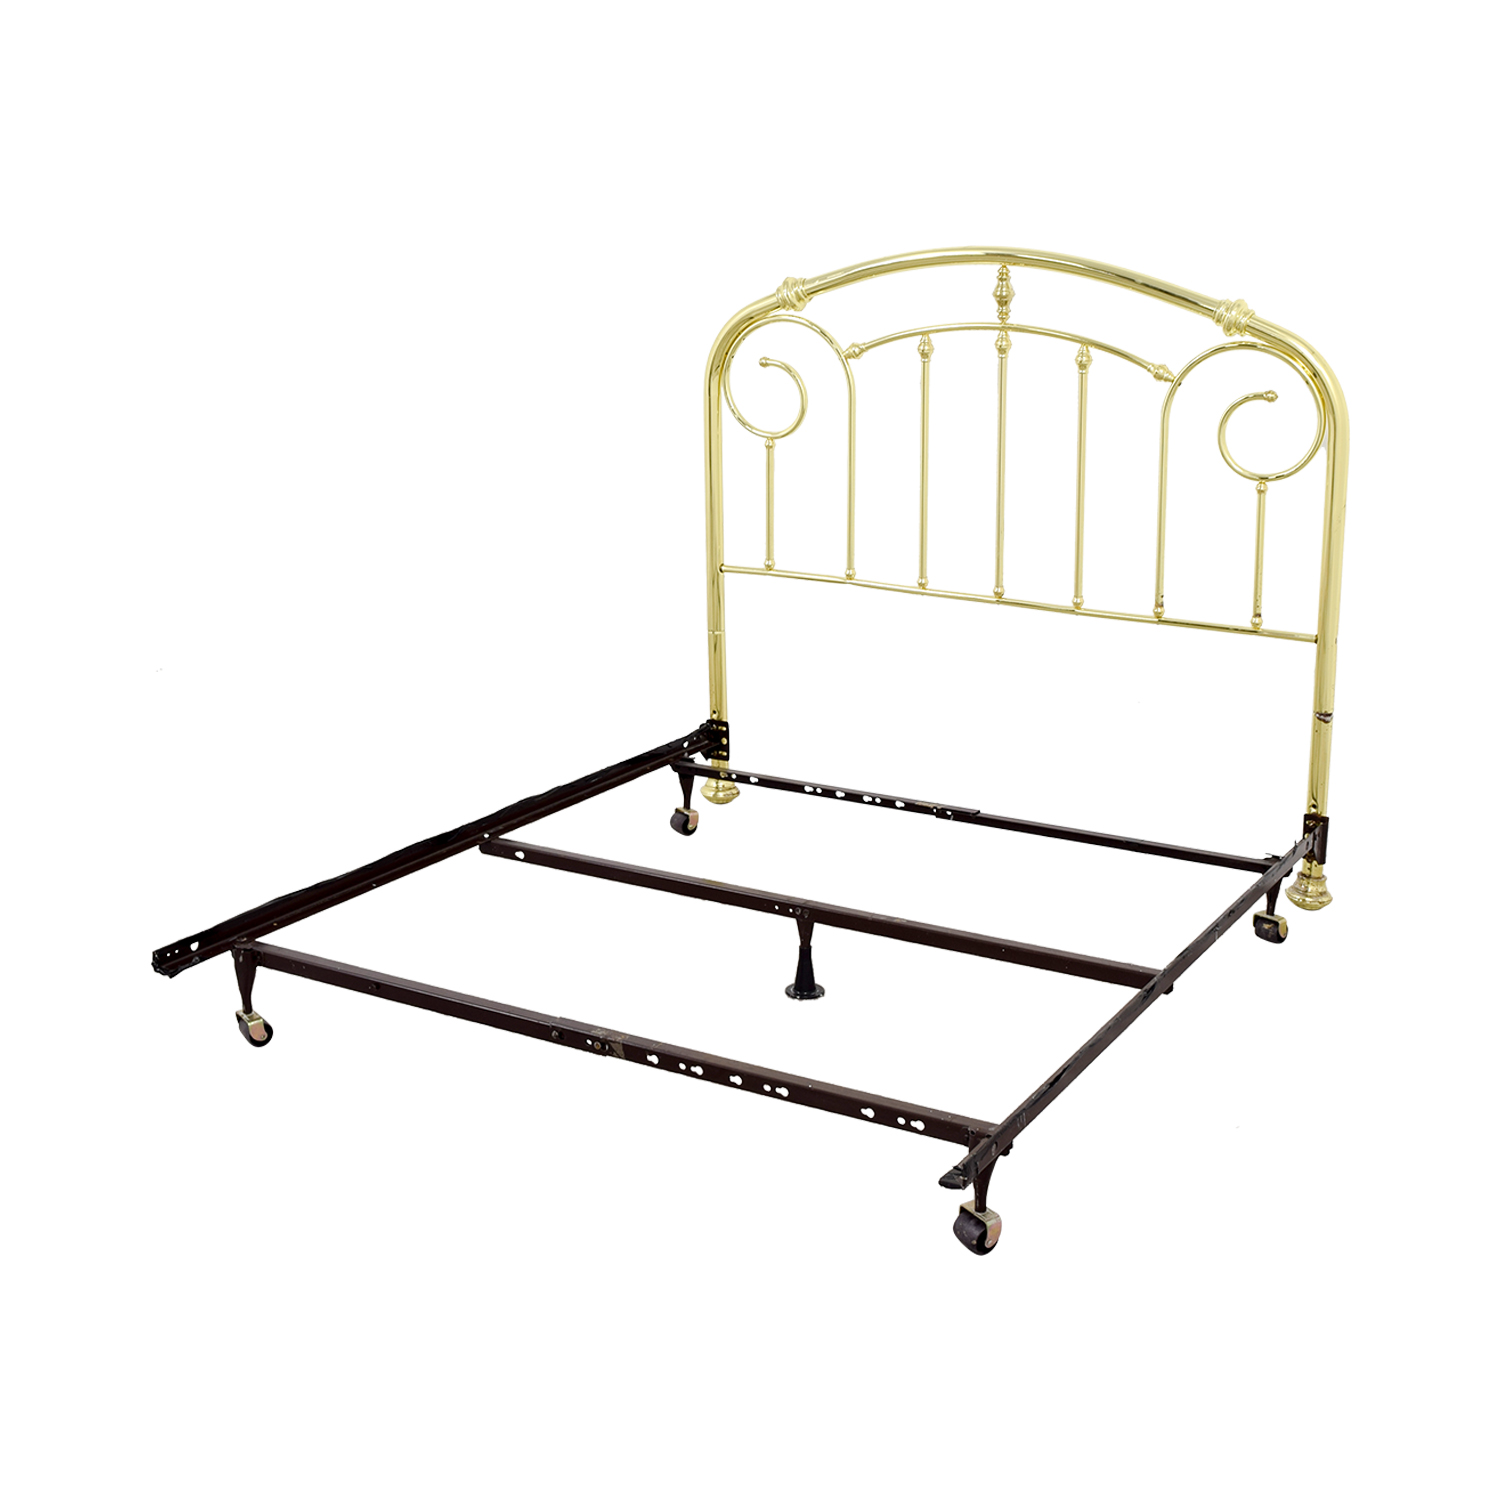 Brass and Metal Bed Frame on sale